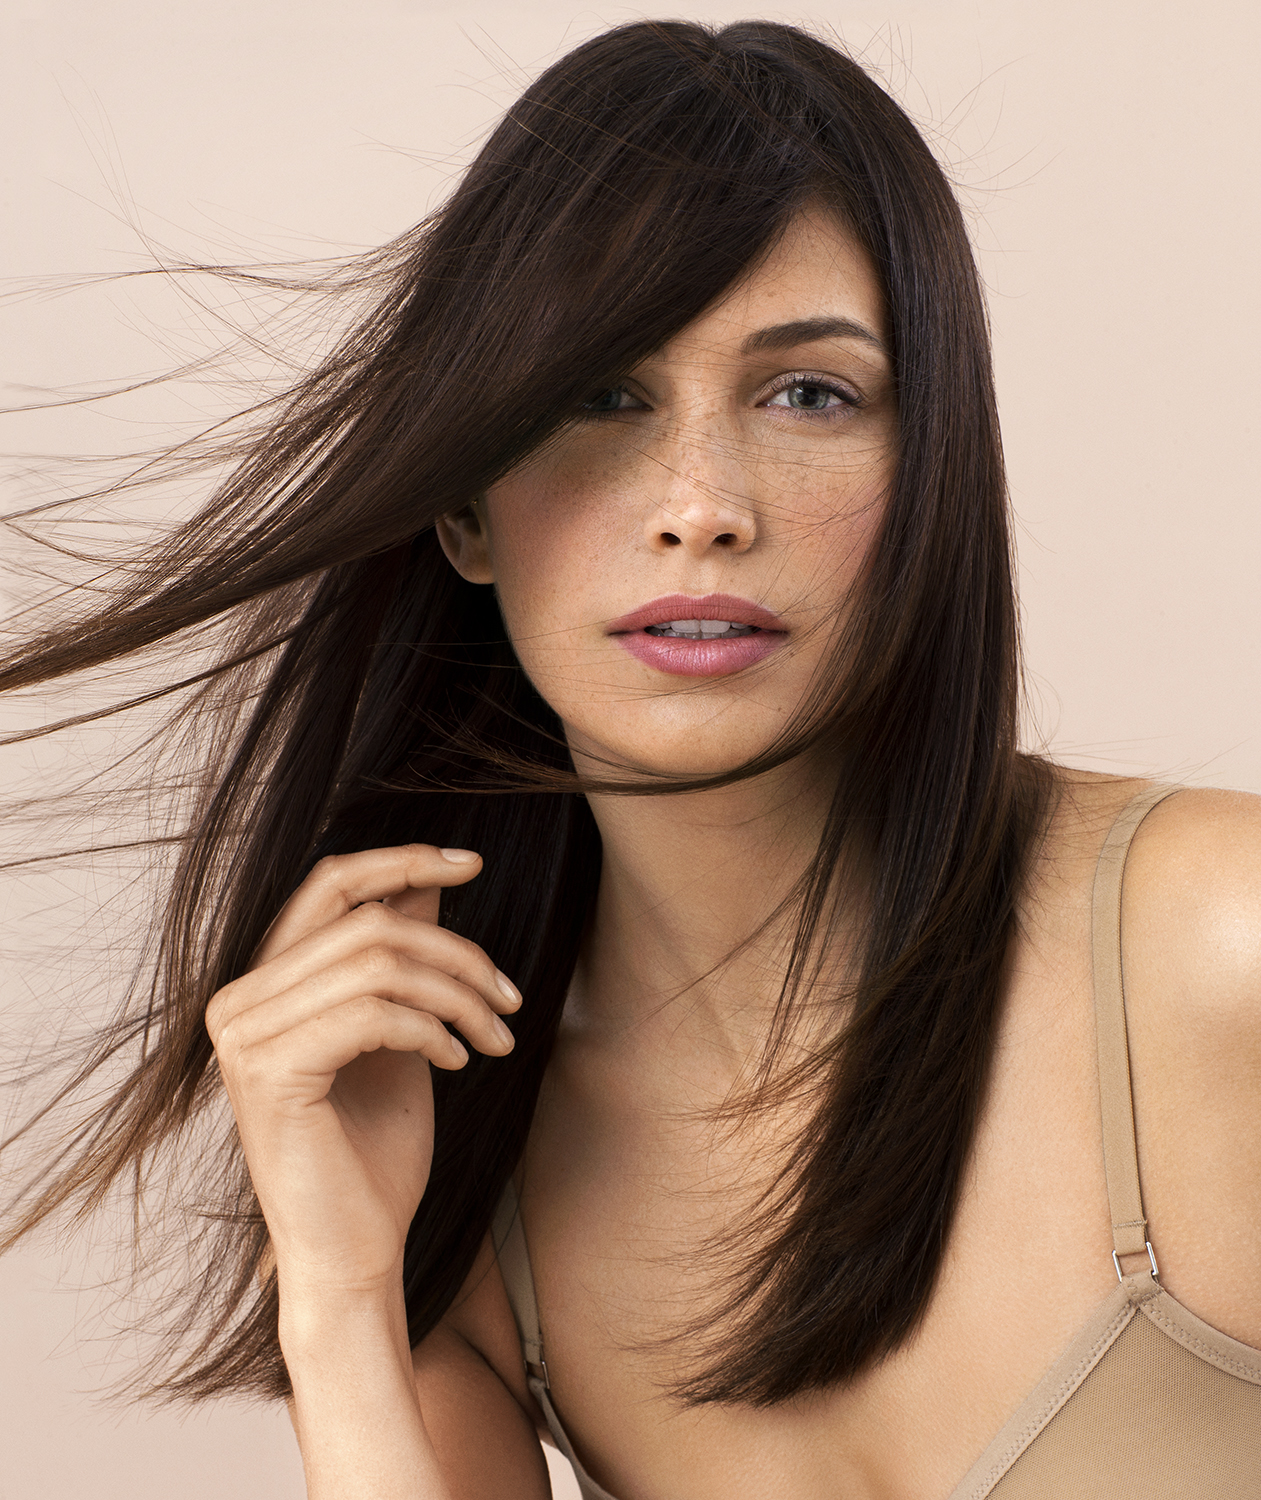 Model with fine straight brown hair